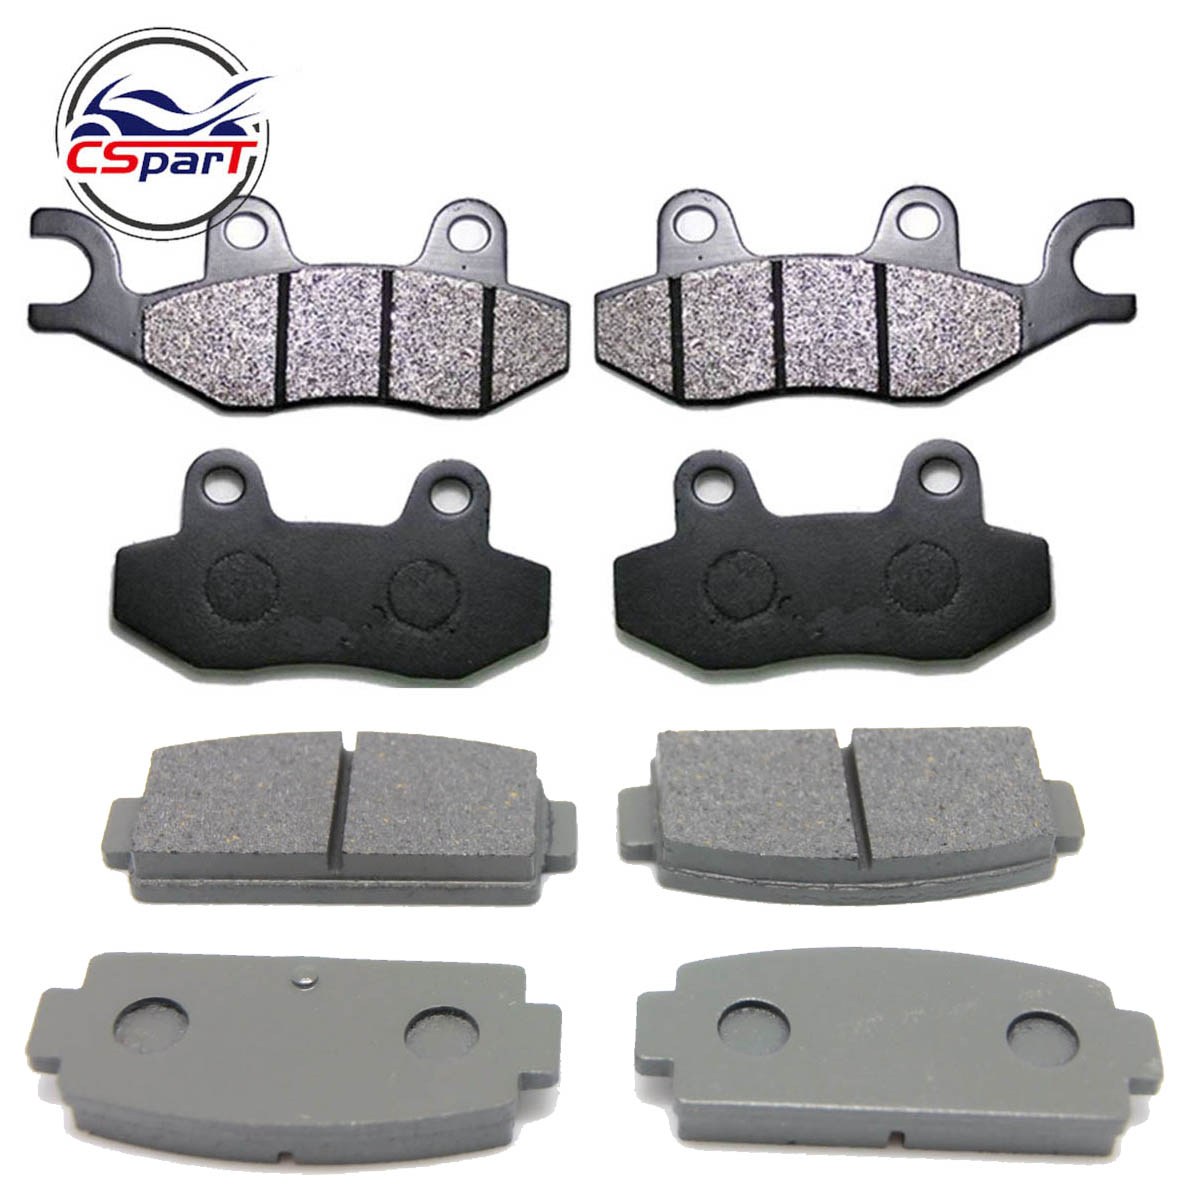 4 Sets Brake Pad For CFMoto ZFORCE CF500 500 550 600 800 Z5 Z6 Z8 500CC 600CC 800CC SSV 9060-080810 9060-080910 9060-081010